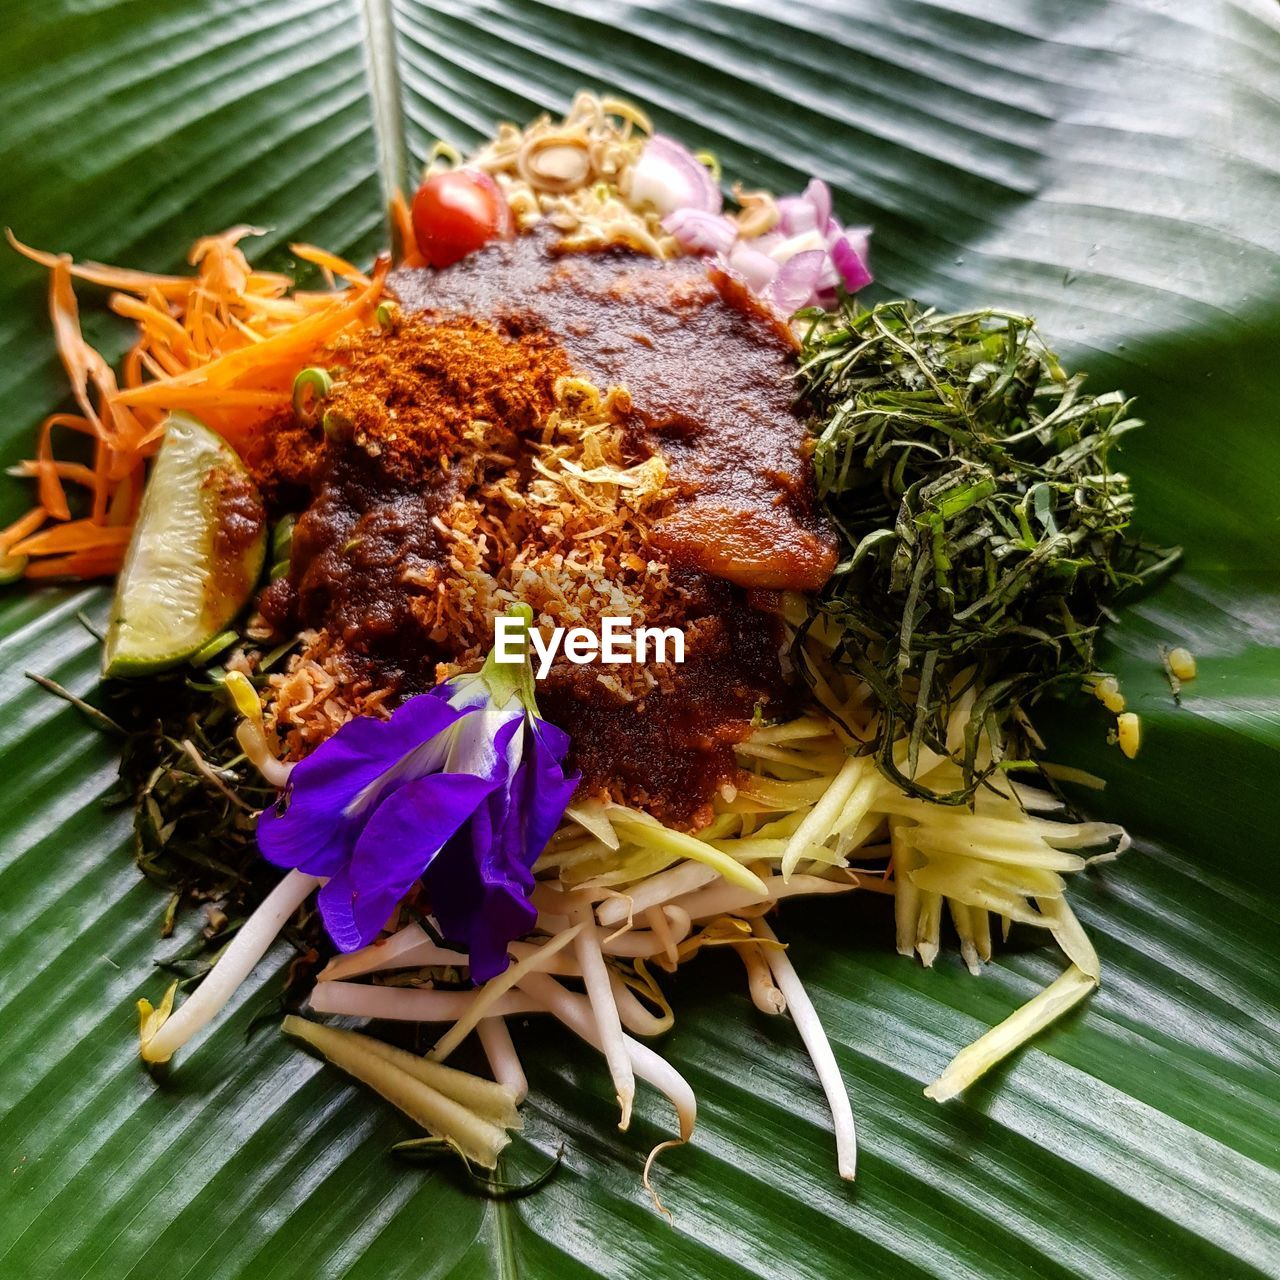 freshness, ready-to-eat, food, food and drink, plate, meat, close-up, indoors, no people, table, plant, healthy eating, still life, serving size, vegetable, leaf, high angle view, meal, banana leaf, flowering plant, leaves, herb